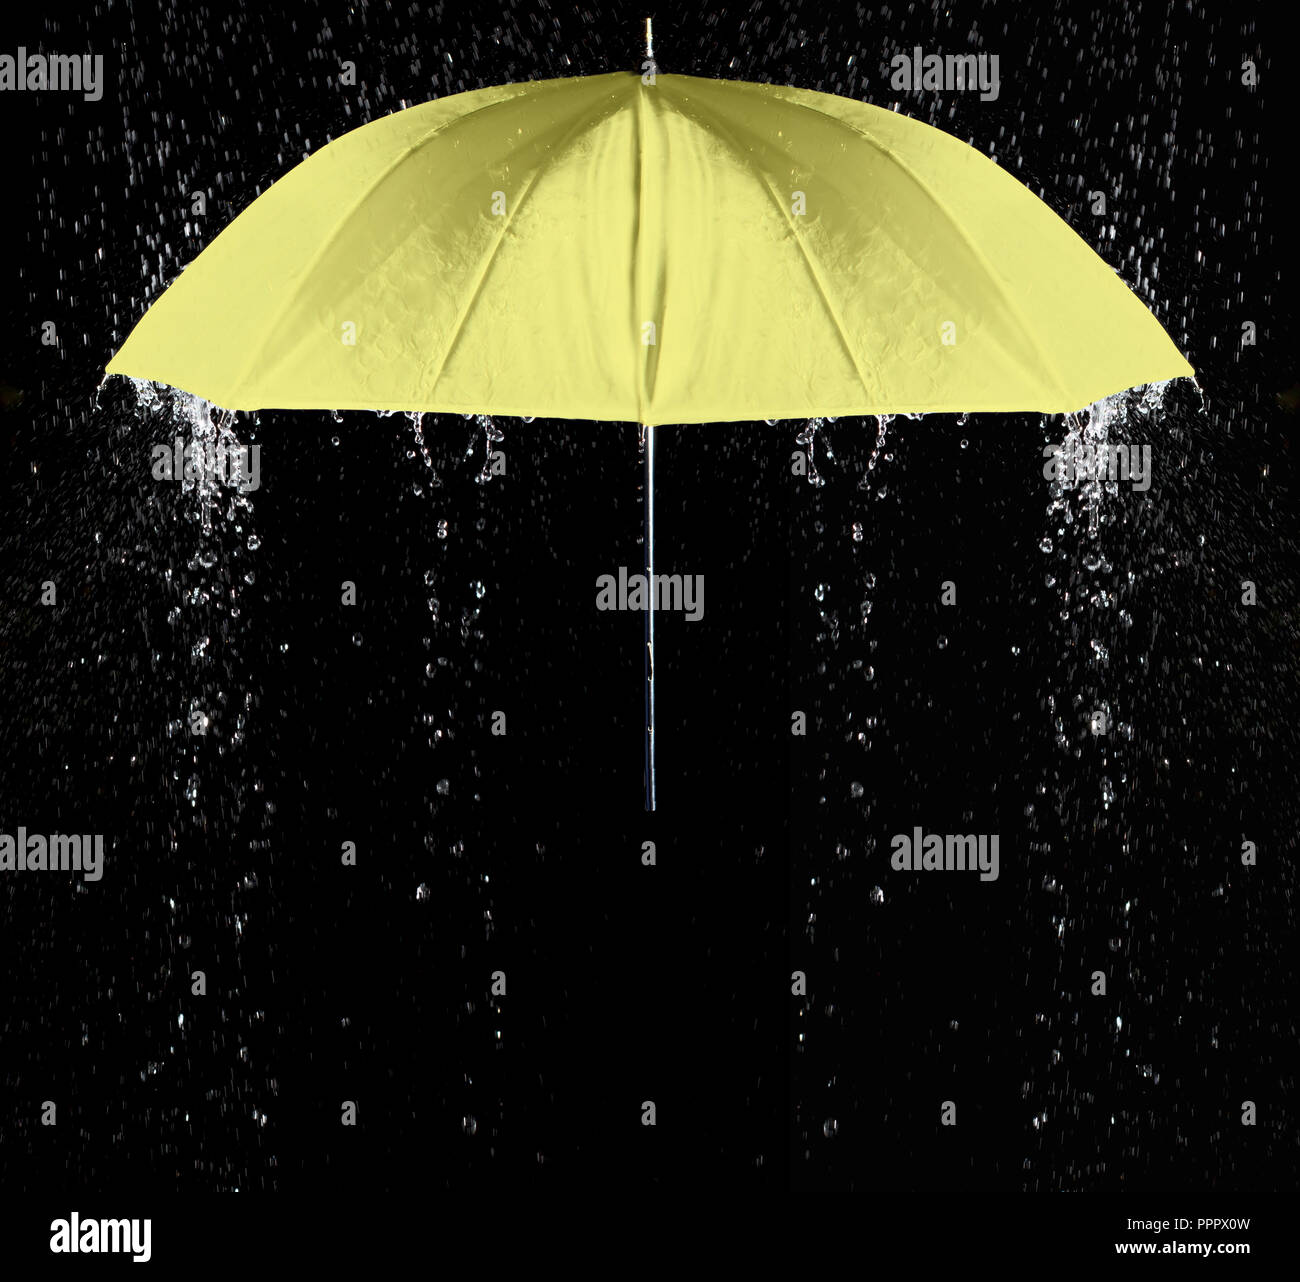 Yellow umbrella under raindrops with black background. Business and fashion concept. Stock Photo